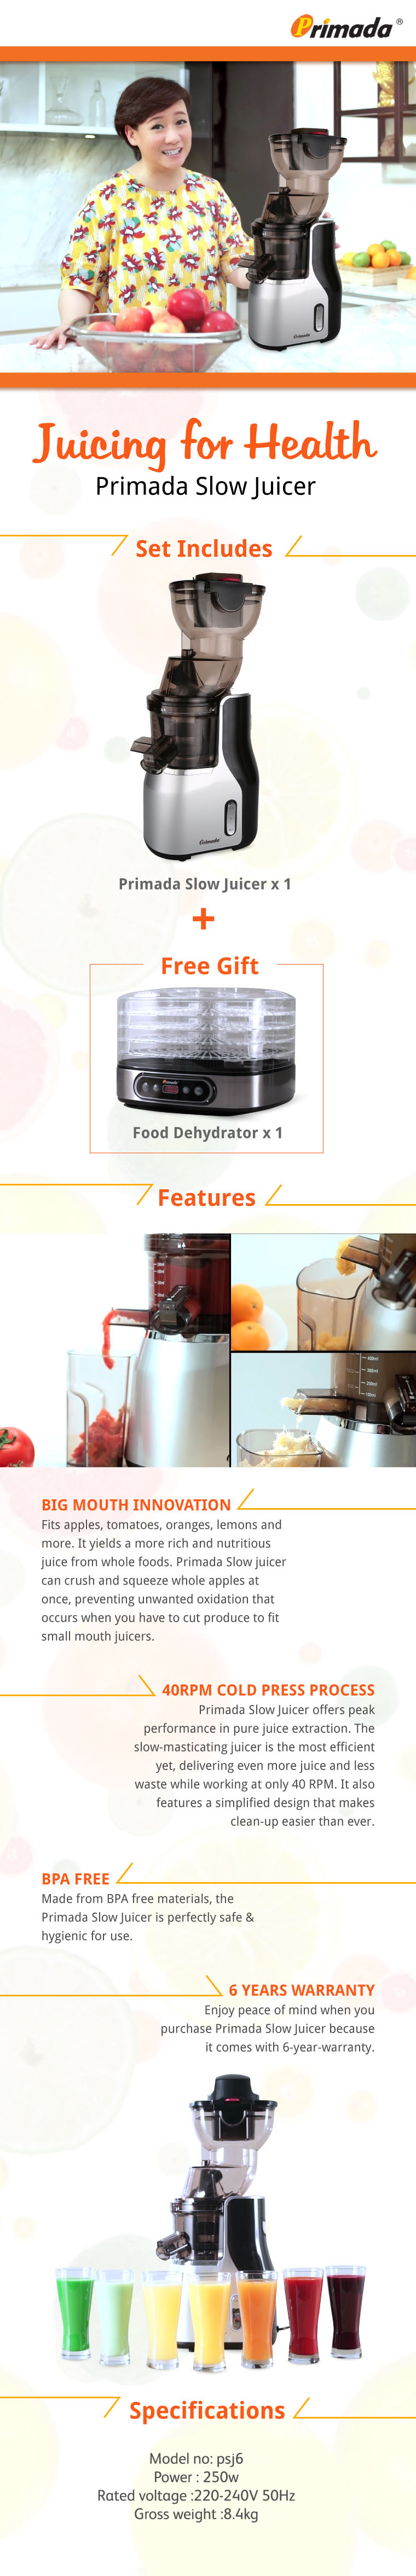 Primada Slow Juicer Promotion : Primada Slow Juicer Go Shop